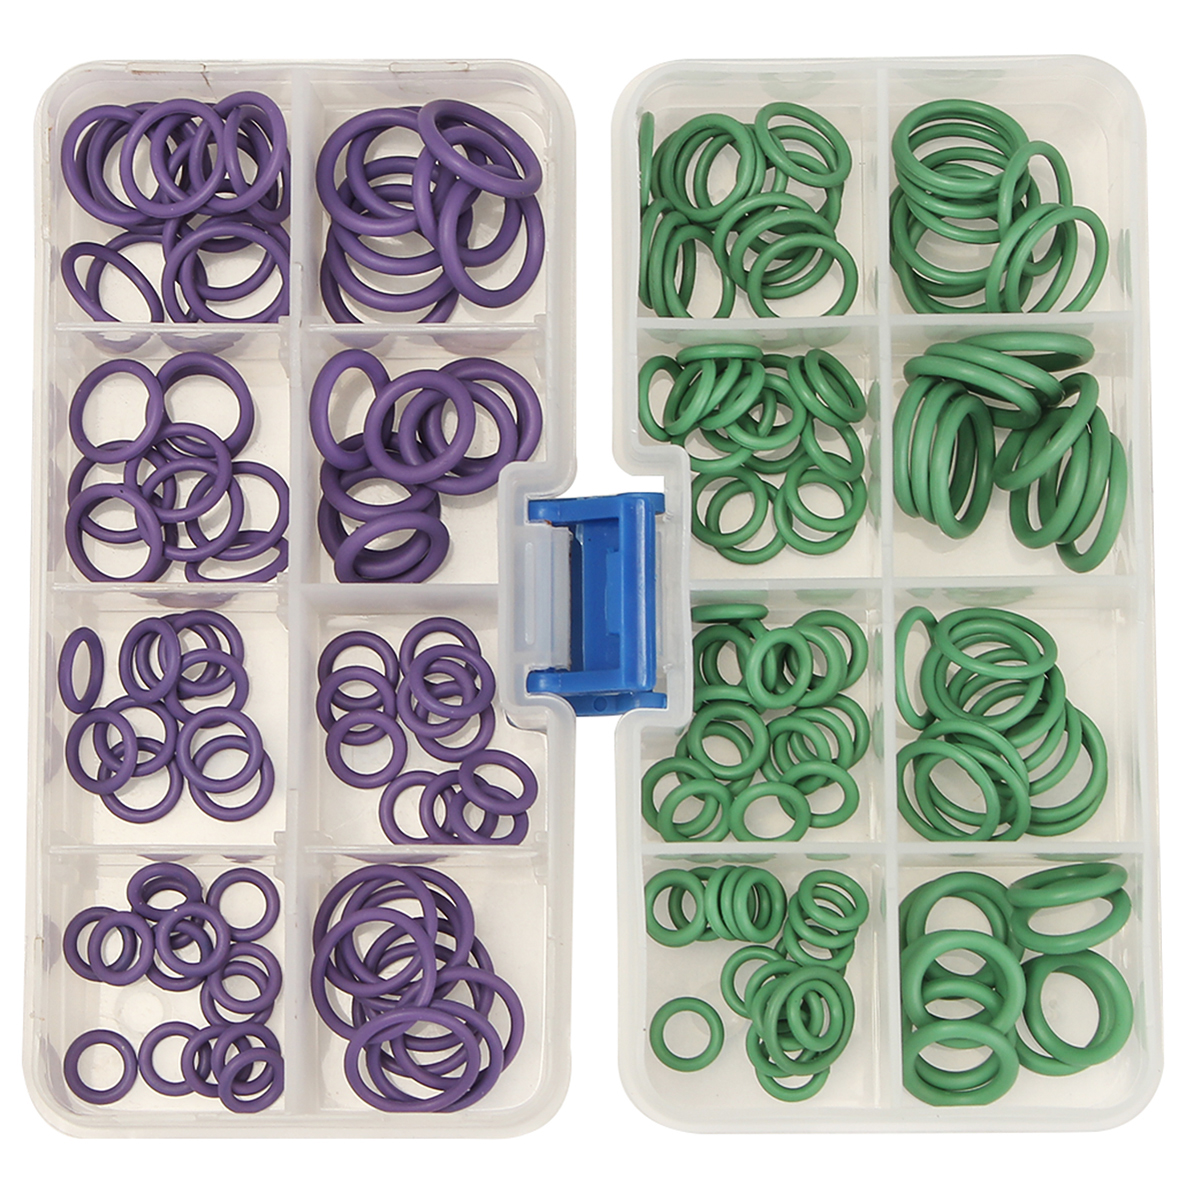 2 Colors Choices 145Pcs A/C R134a System Air Conditioning O Ring Seals Washer Kit Purple/Green O Type Rubber Ring